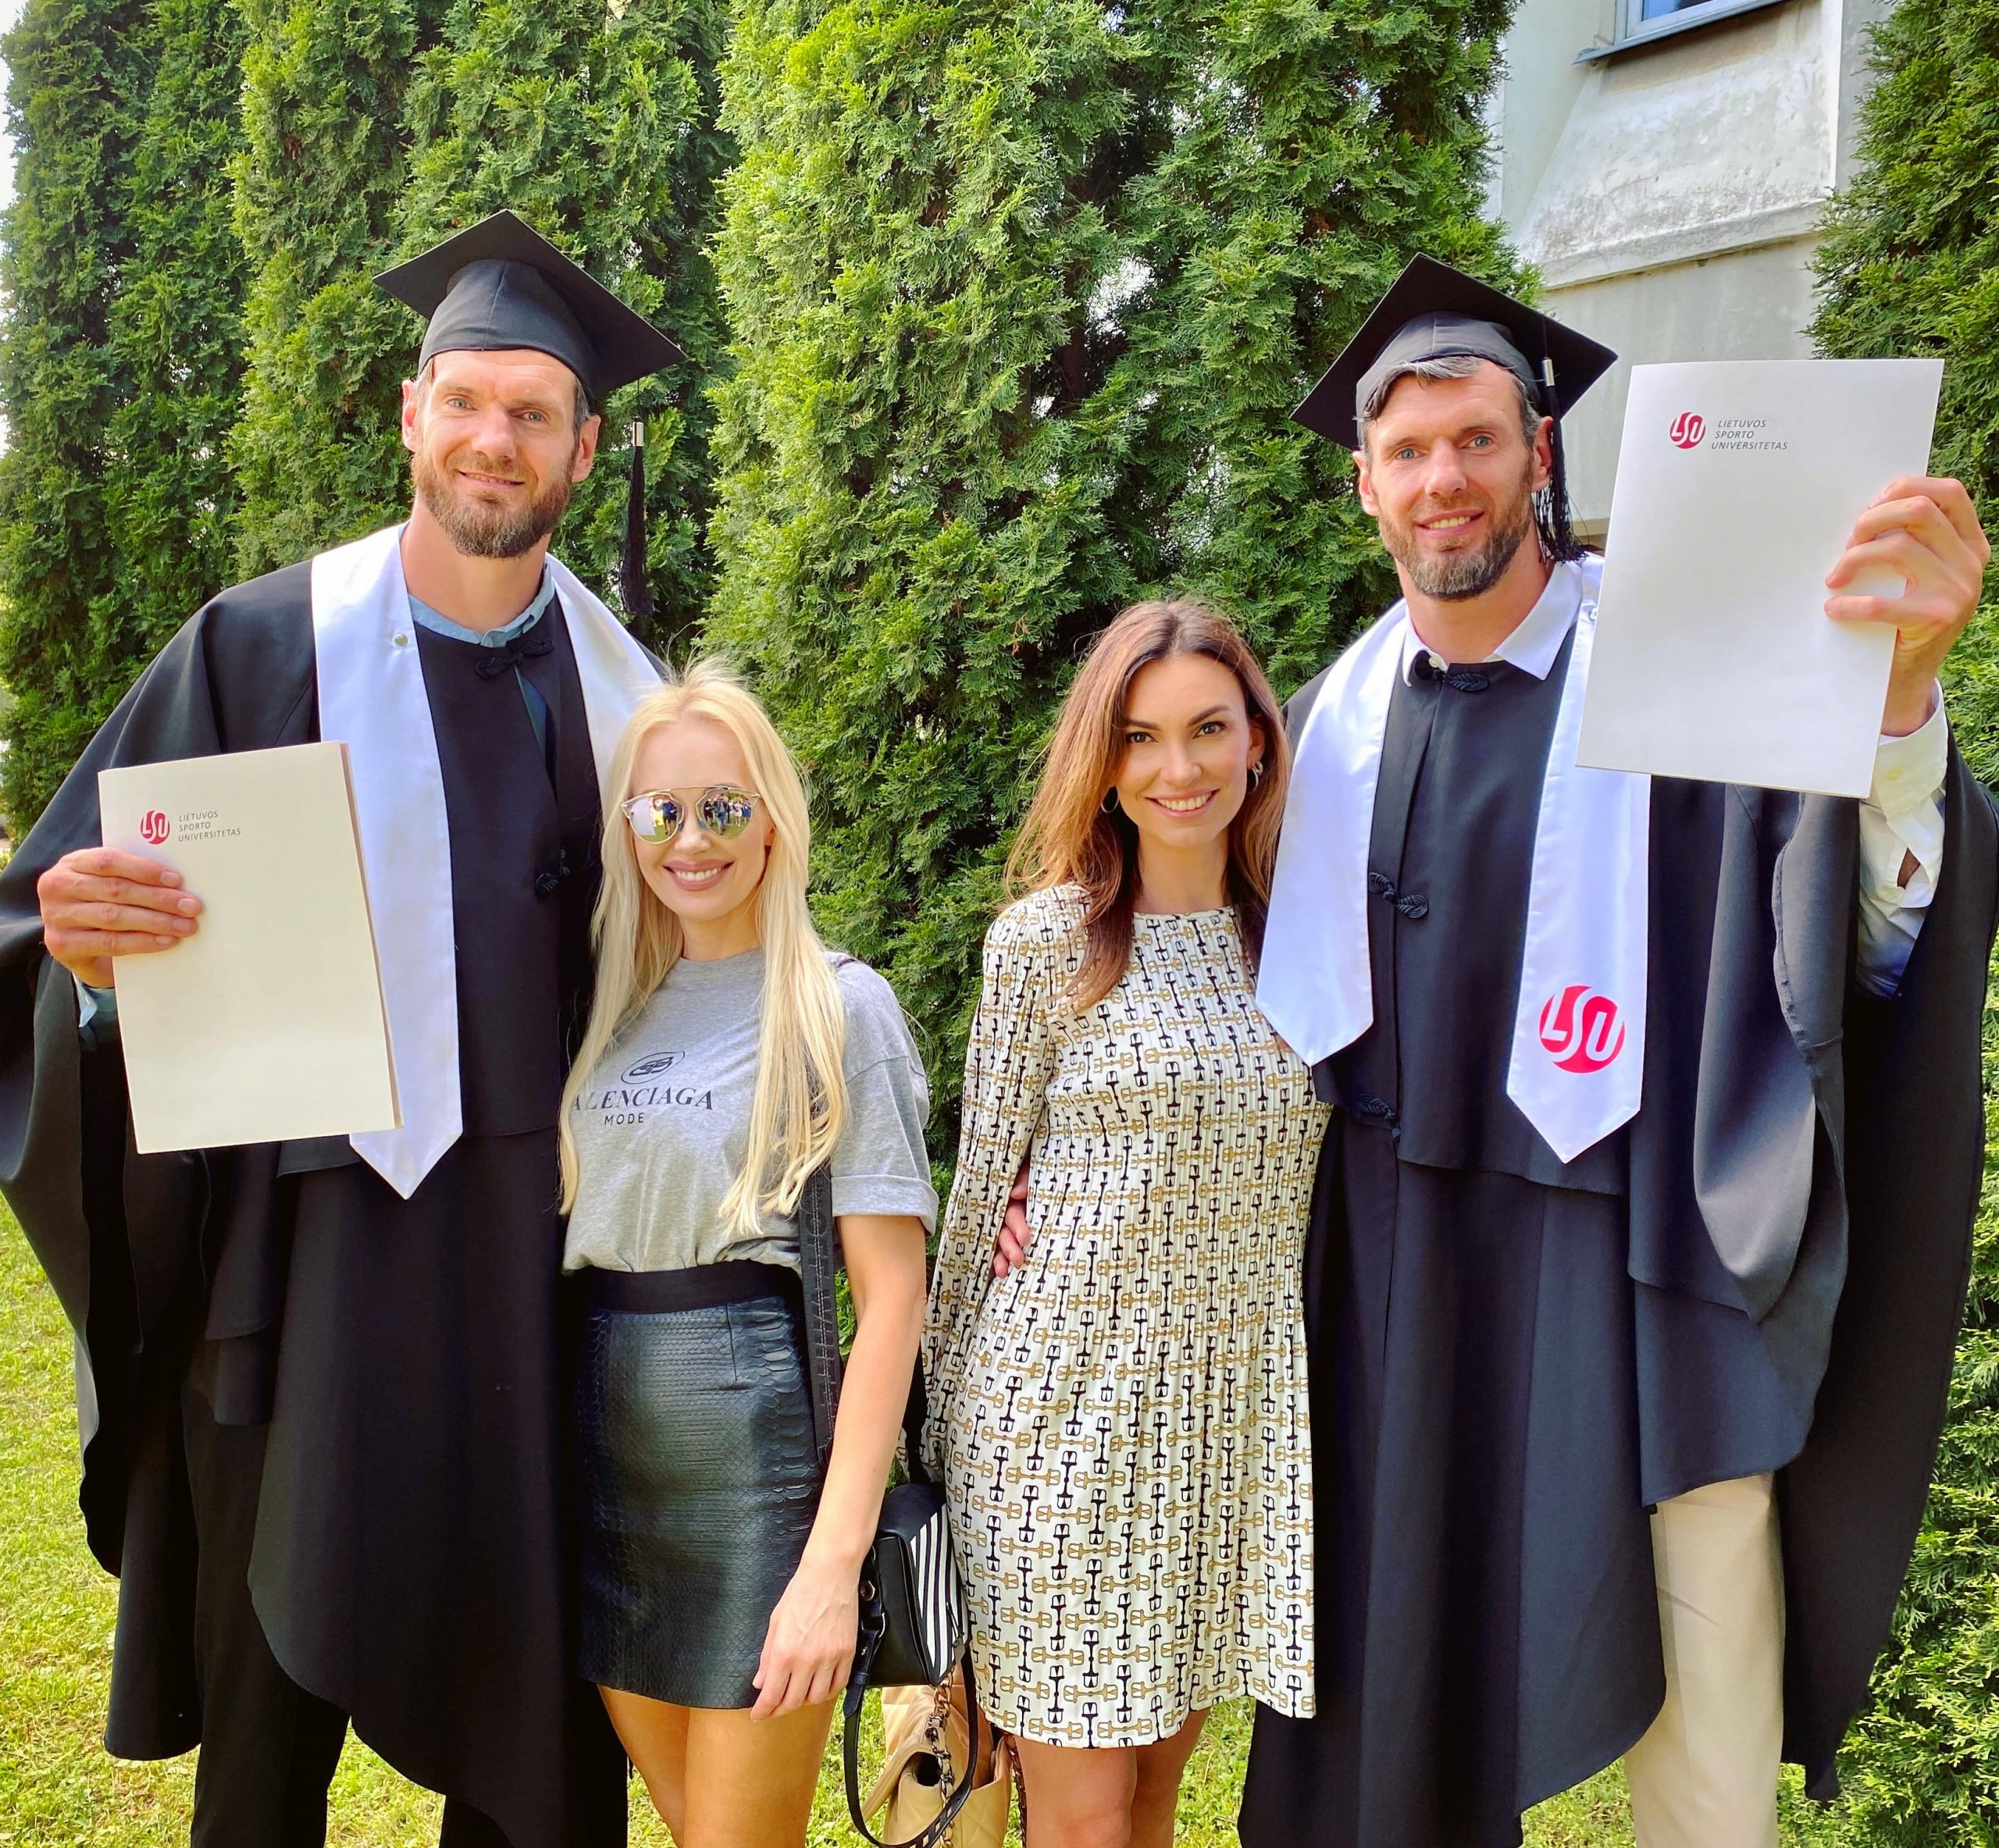 MASTER'S DIPLOMA IN OUR HANDS